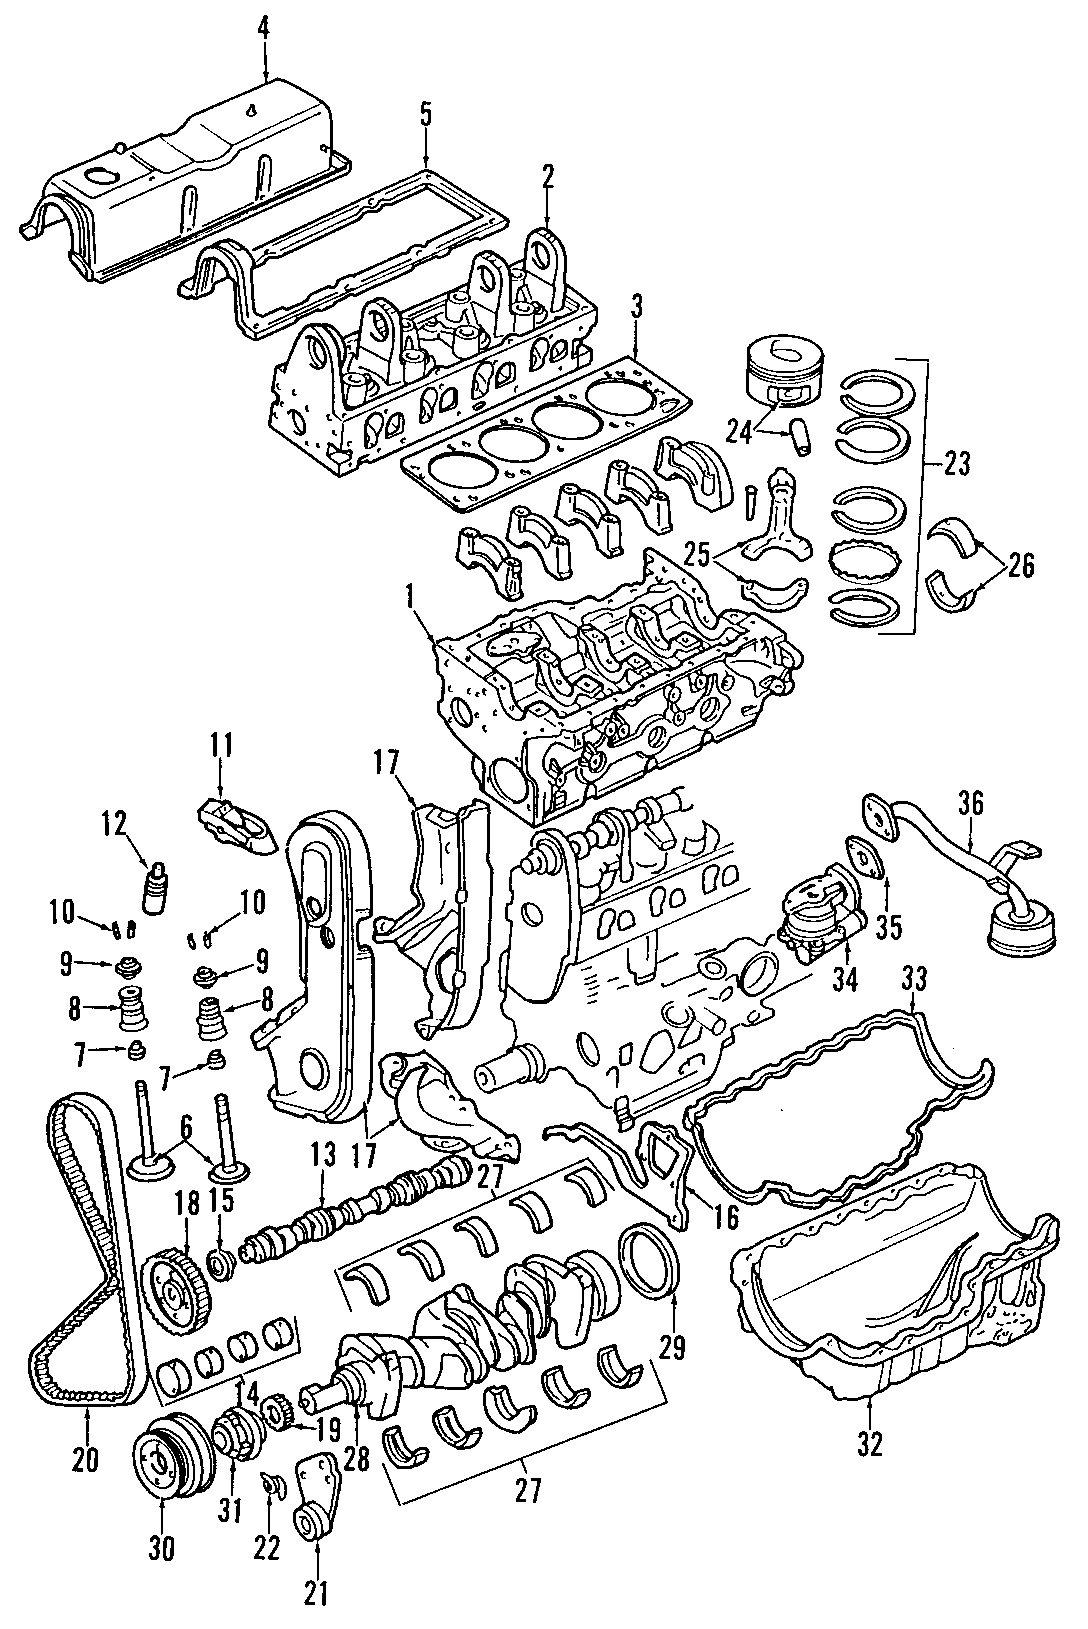 2002 Mazda B-Series Engine Timing Cover. 2.3 LITER, lower